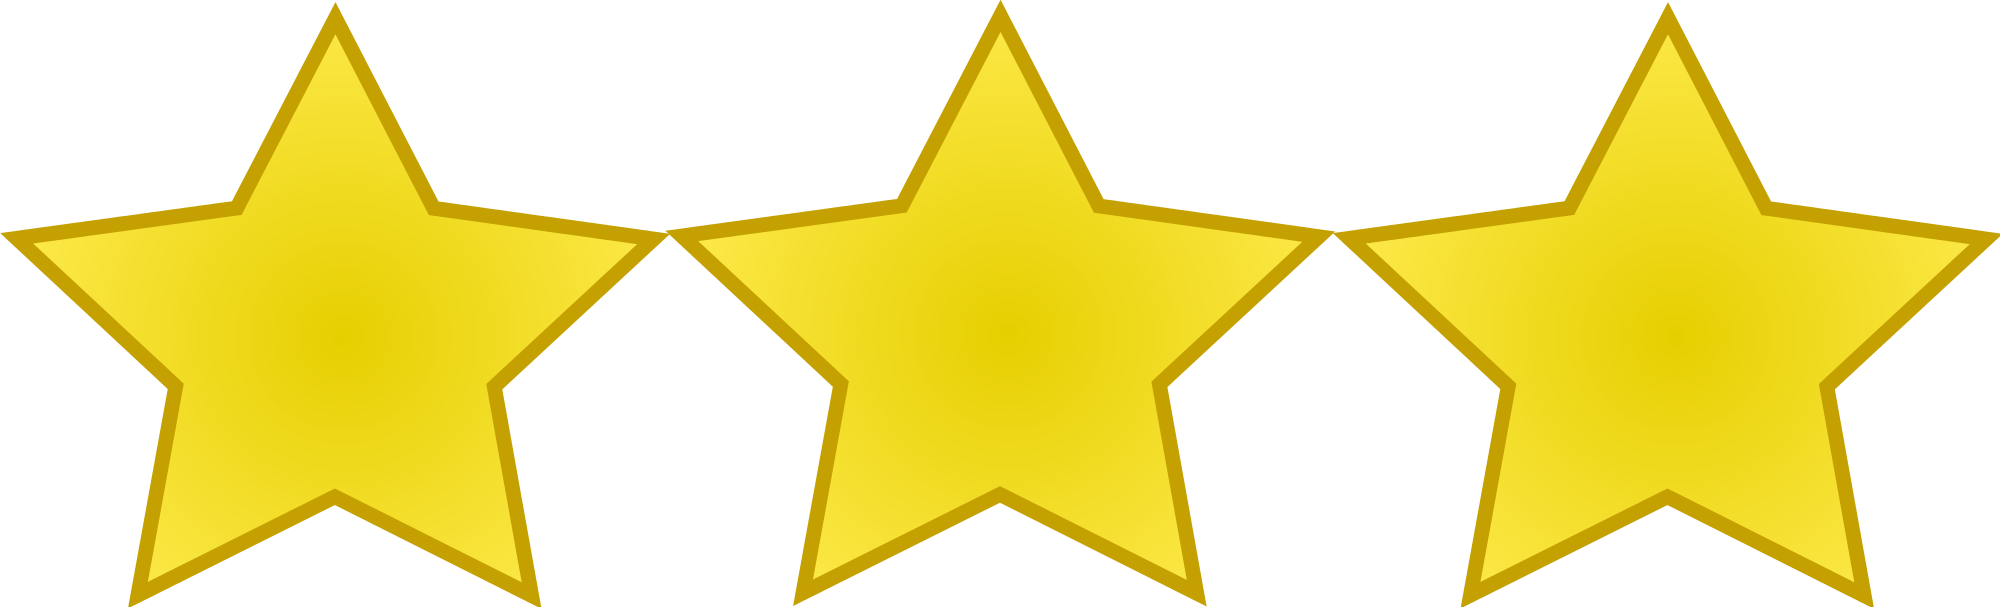 3 star png. File emblem stars svg clipart black and white download